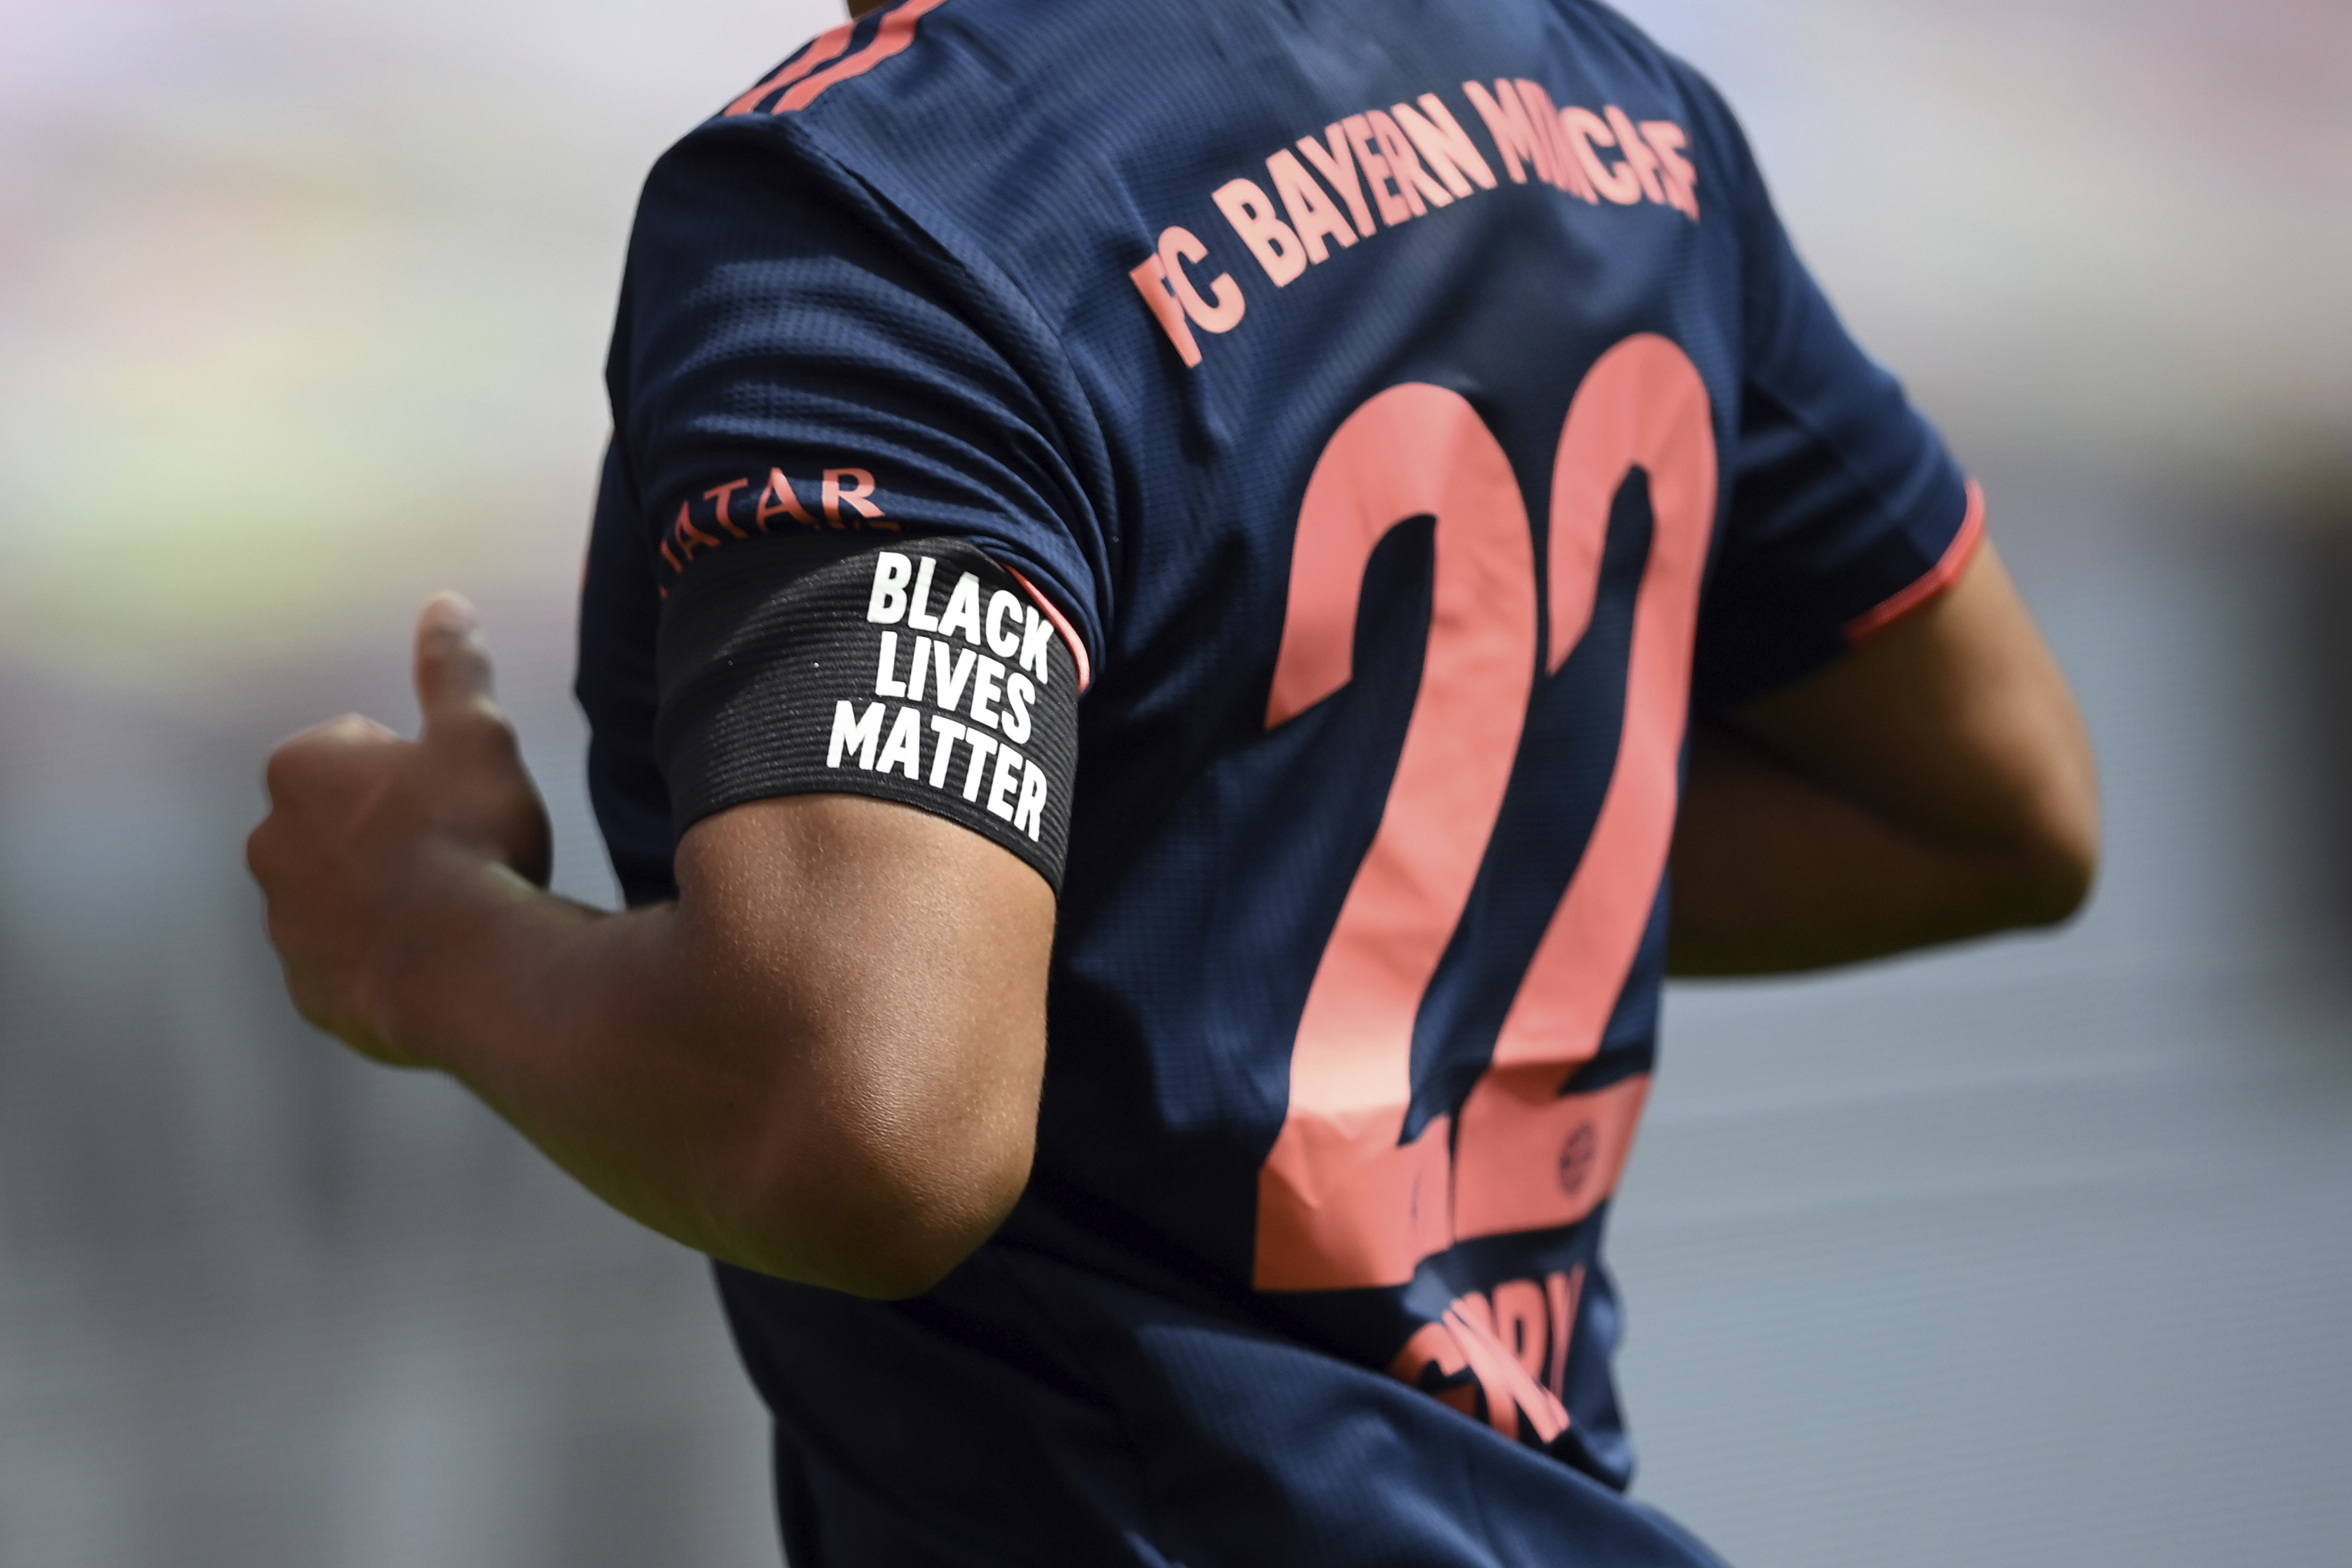 Bayern in solidarity with Black Lives Matter movement as team closes in on Bundesliga title